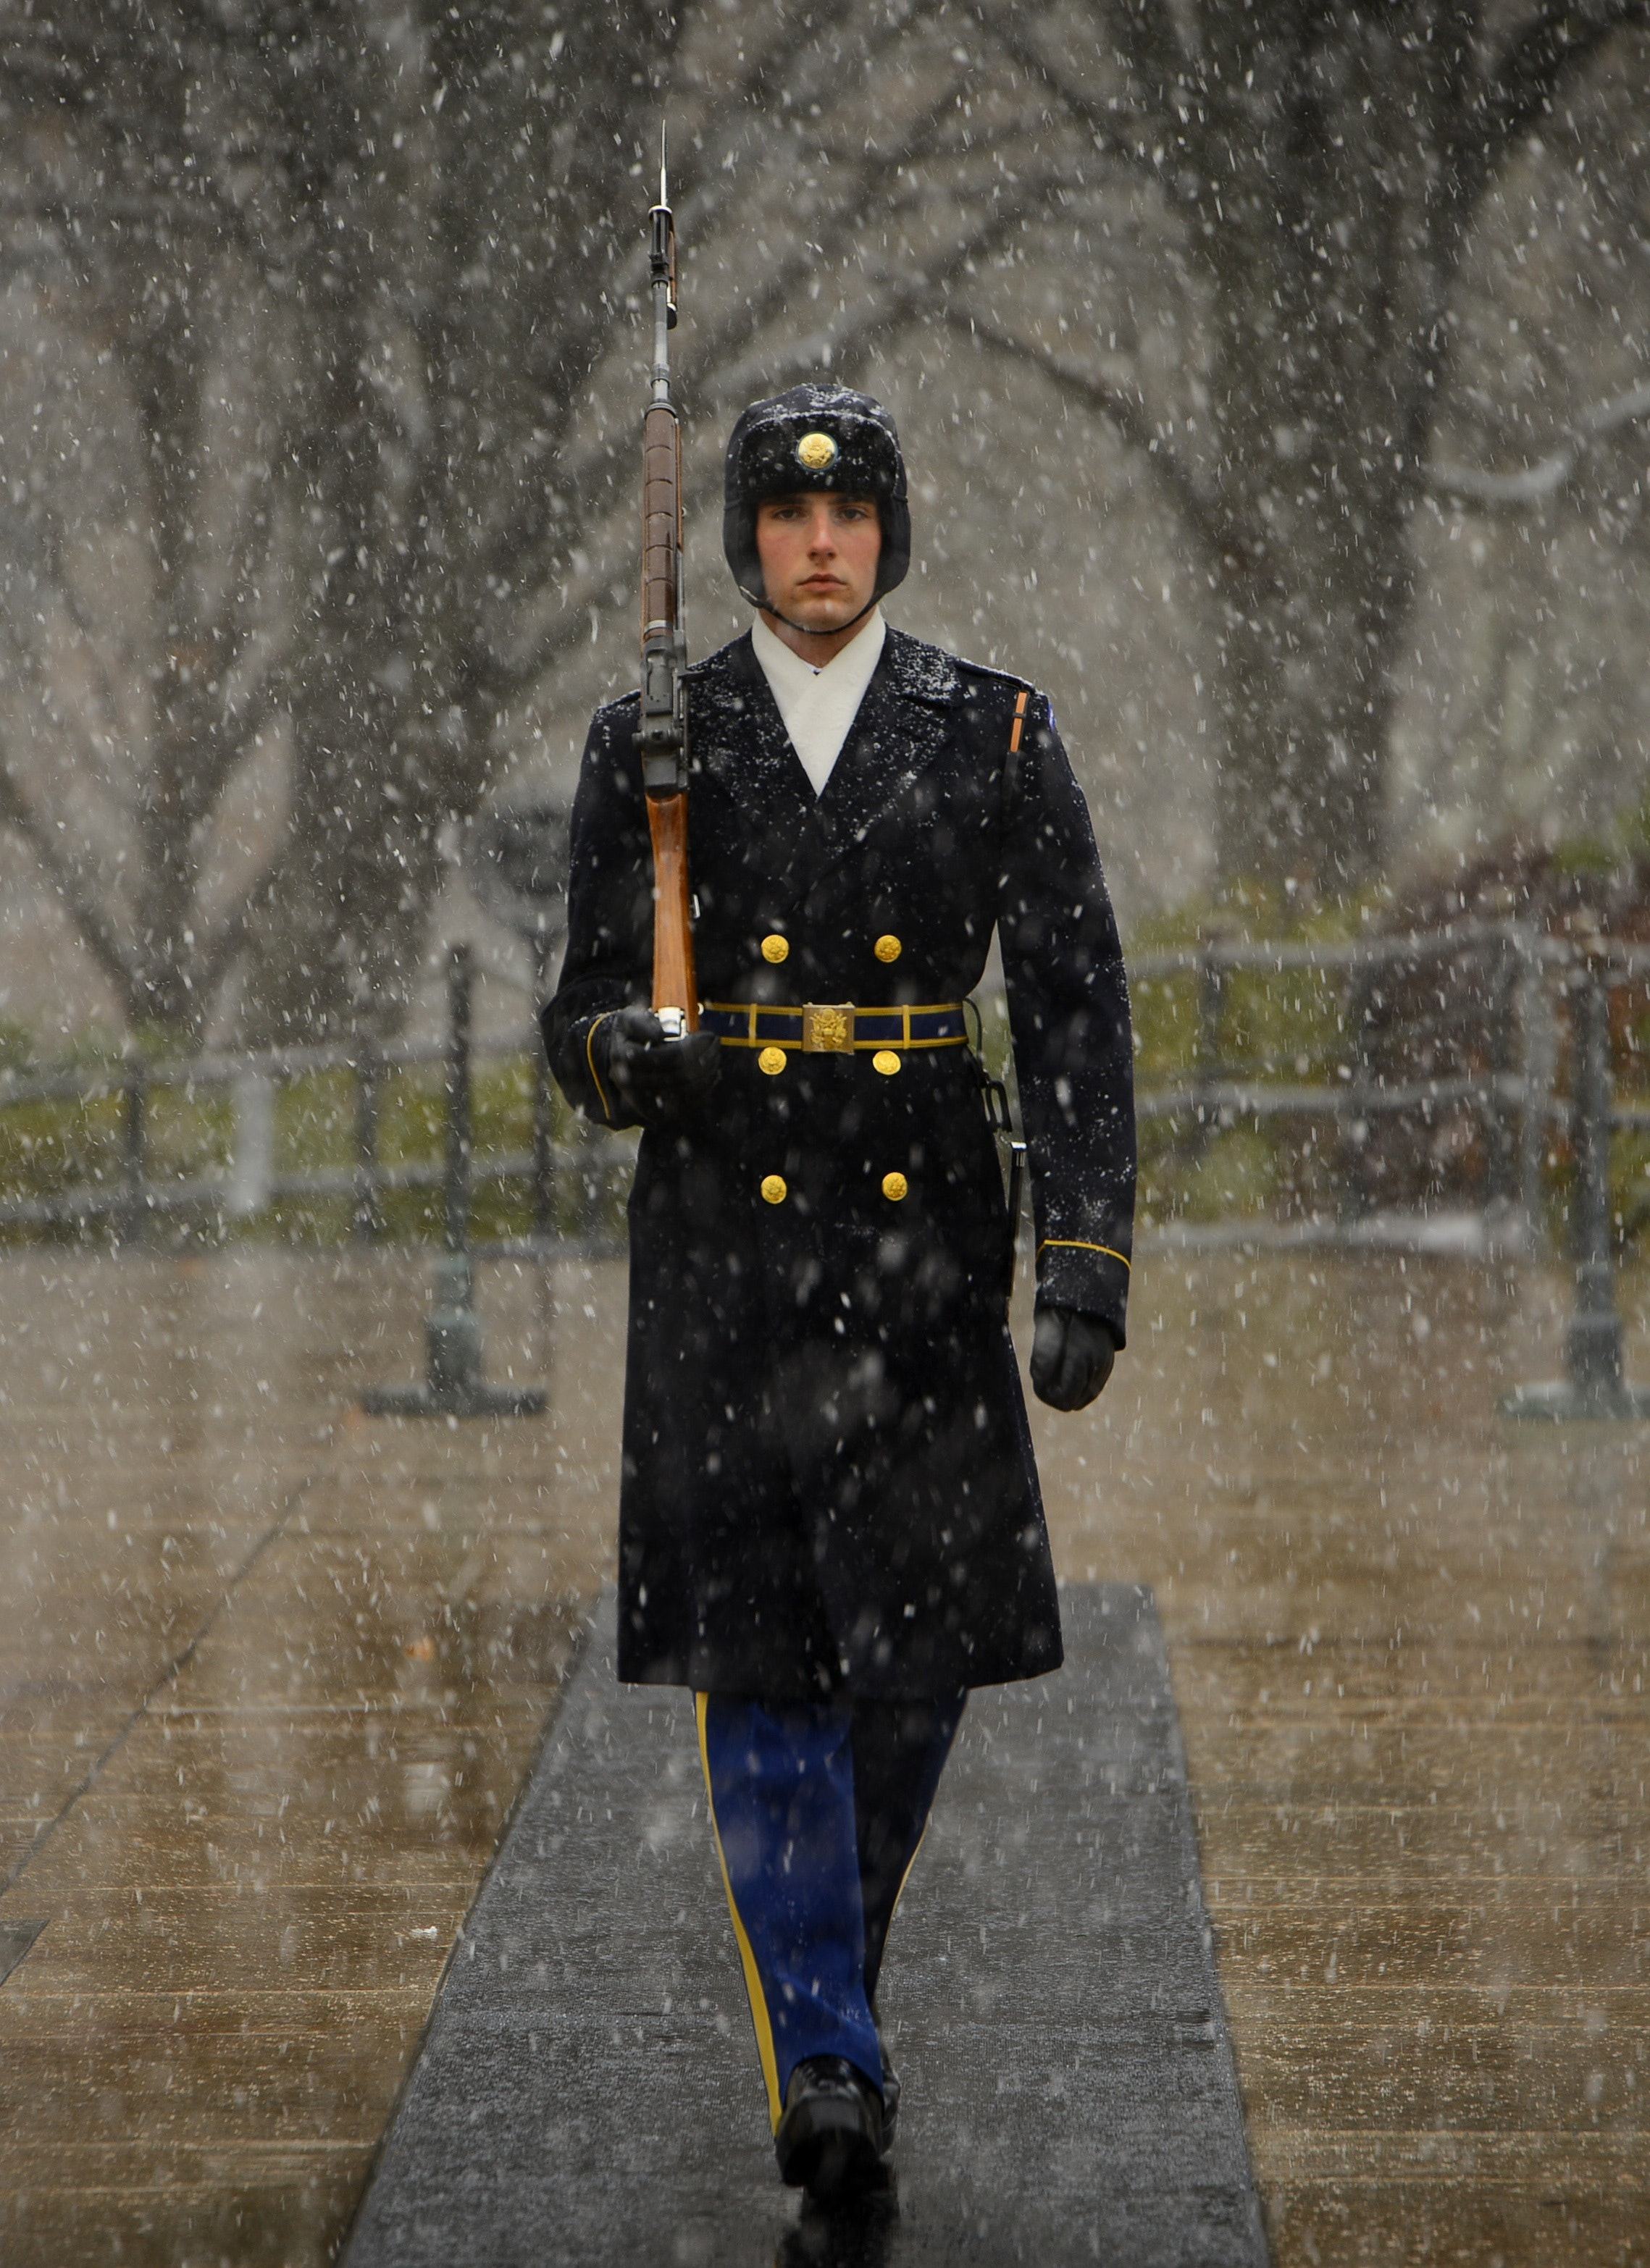 Man in Black Coat Carrying a Rifle Walking in Straight Line during Daytime, Sentinel, Winter, Virginia, Tomb, HQ Photo